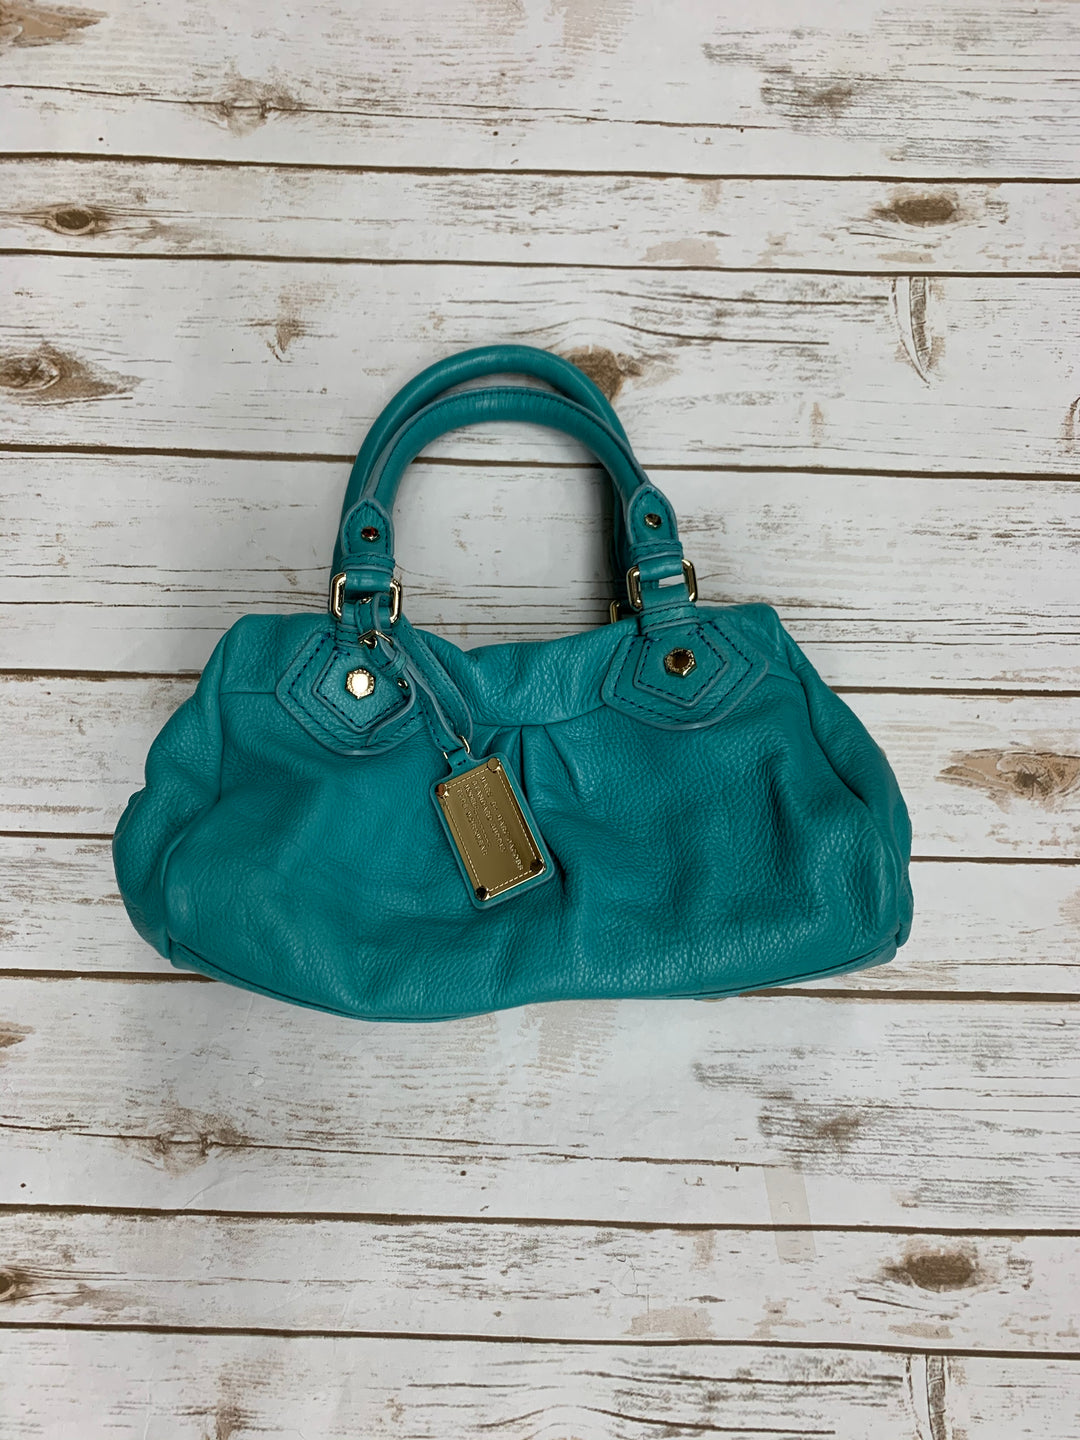 Primary Photo - BRAND: MARC BY MARC JACOBS <BR>STYLE: HANDBAG DESIGNER <BR>COLOR: TURQUOISE <BR>SIZE: MEDIUM <BR>SKU: 196-19681-70747